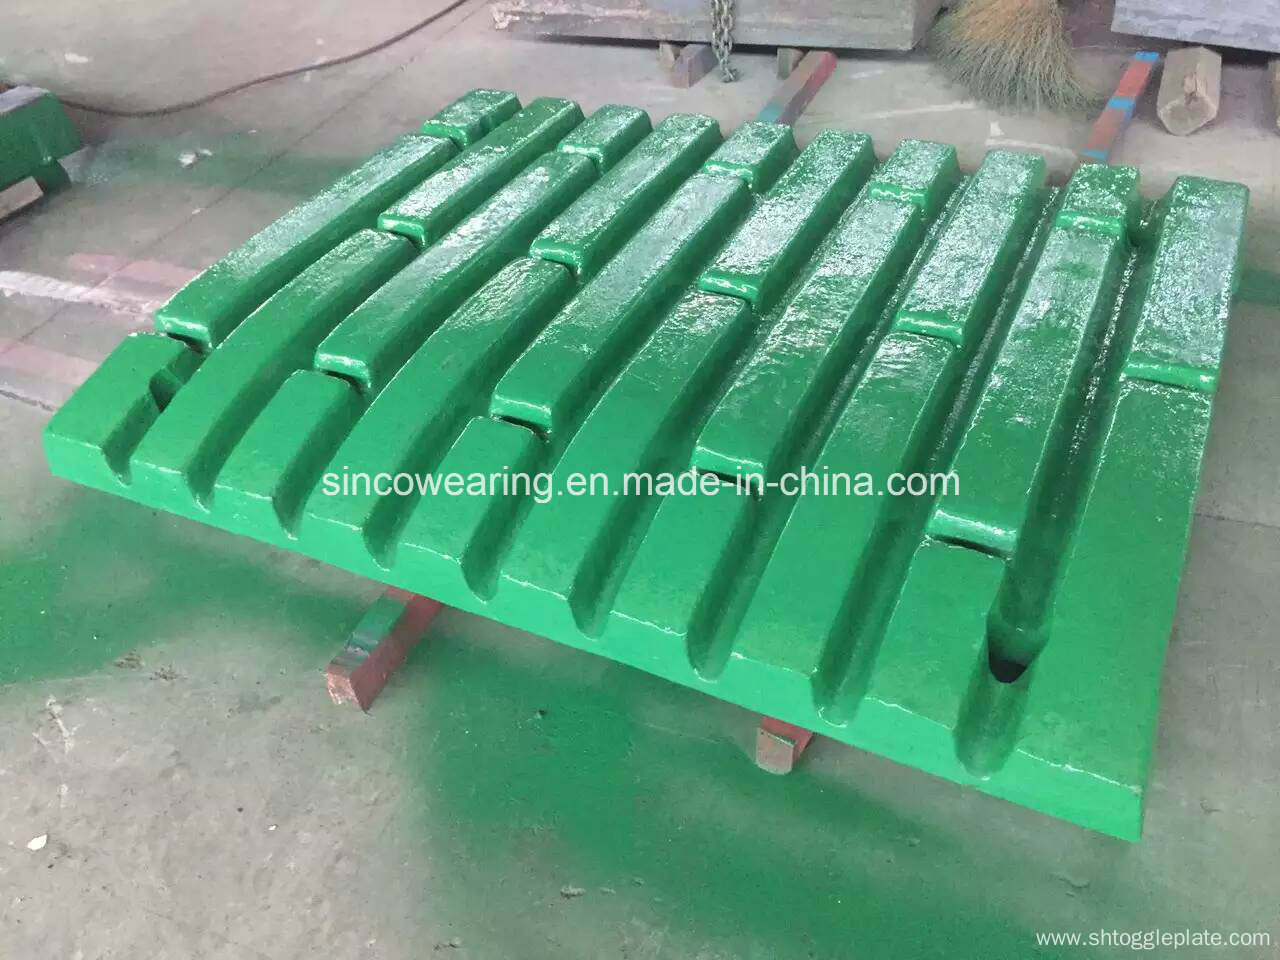 composite jaw crusher plate expert appraising Indonesia coal mine expert crusher parts,jaw plate,jaw crusher,impact crusher,cone crusher,bucket composite crushersource from zhengzhou yonghua.